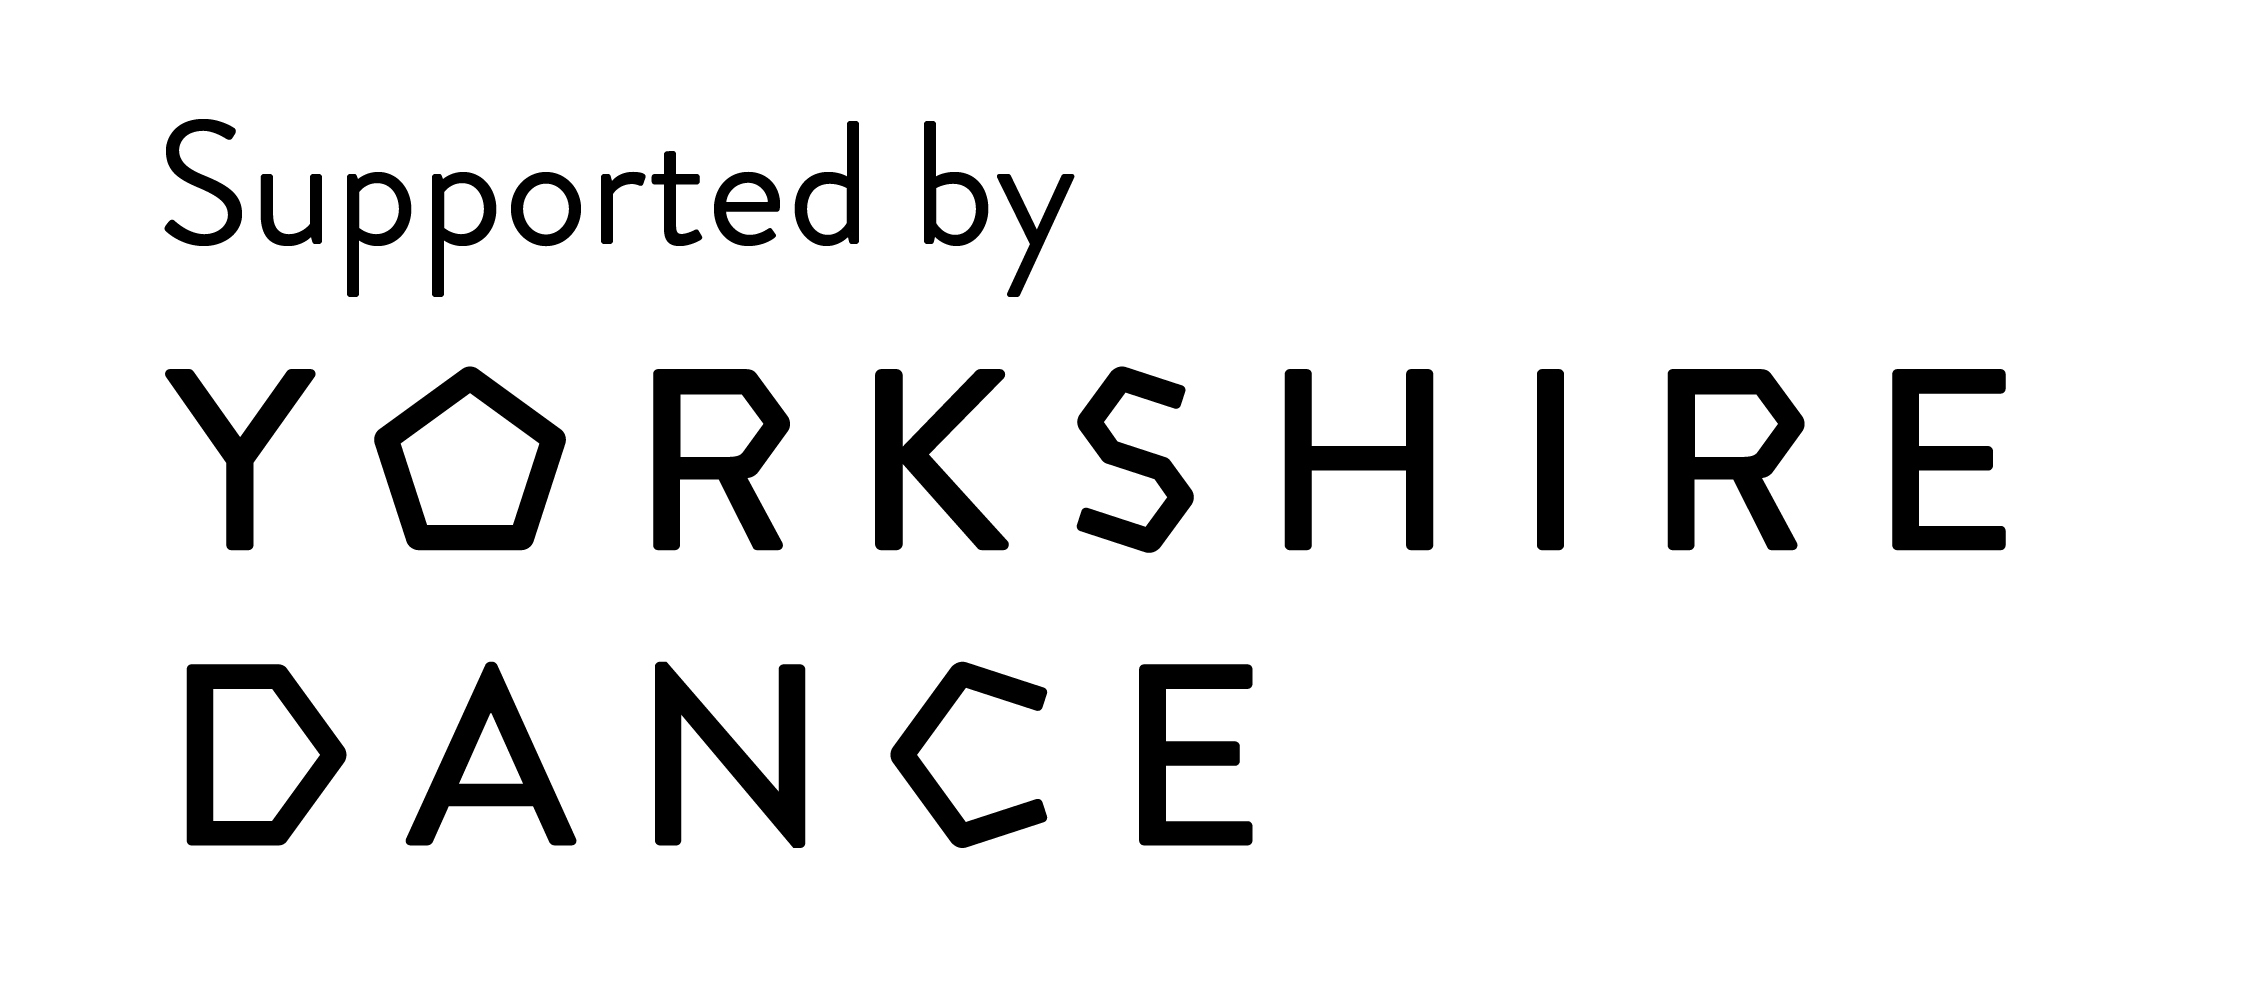 Supported by Yorkshire Dance - logo.jpg